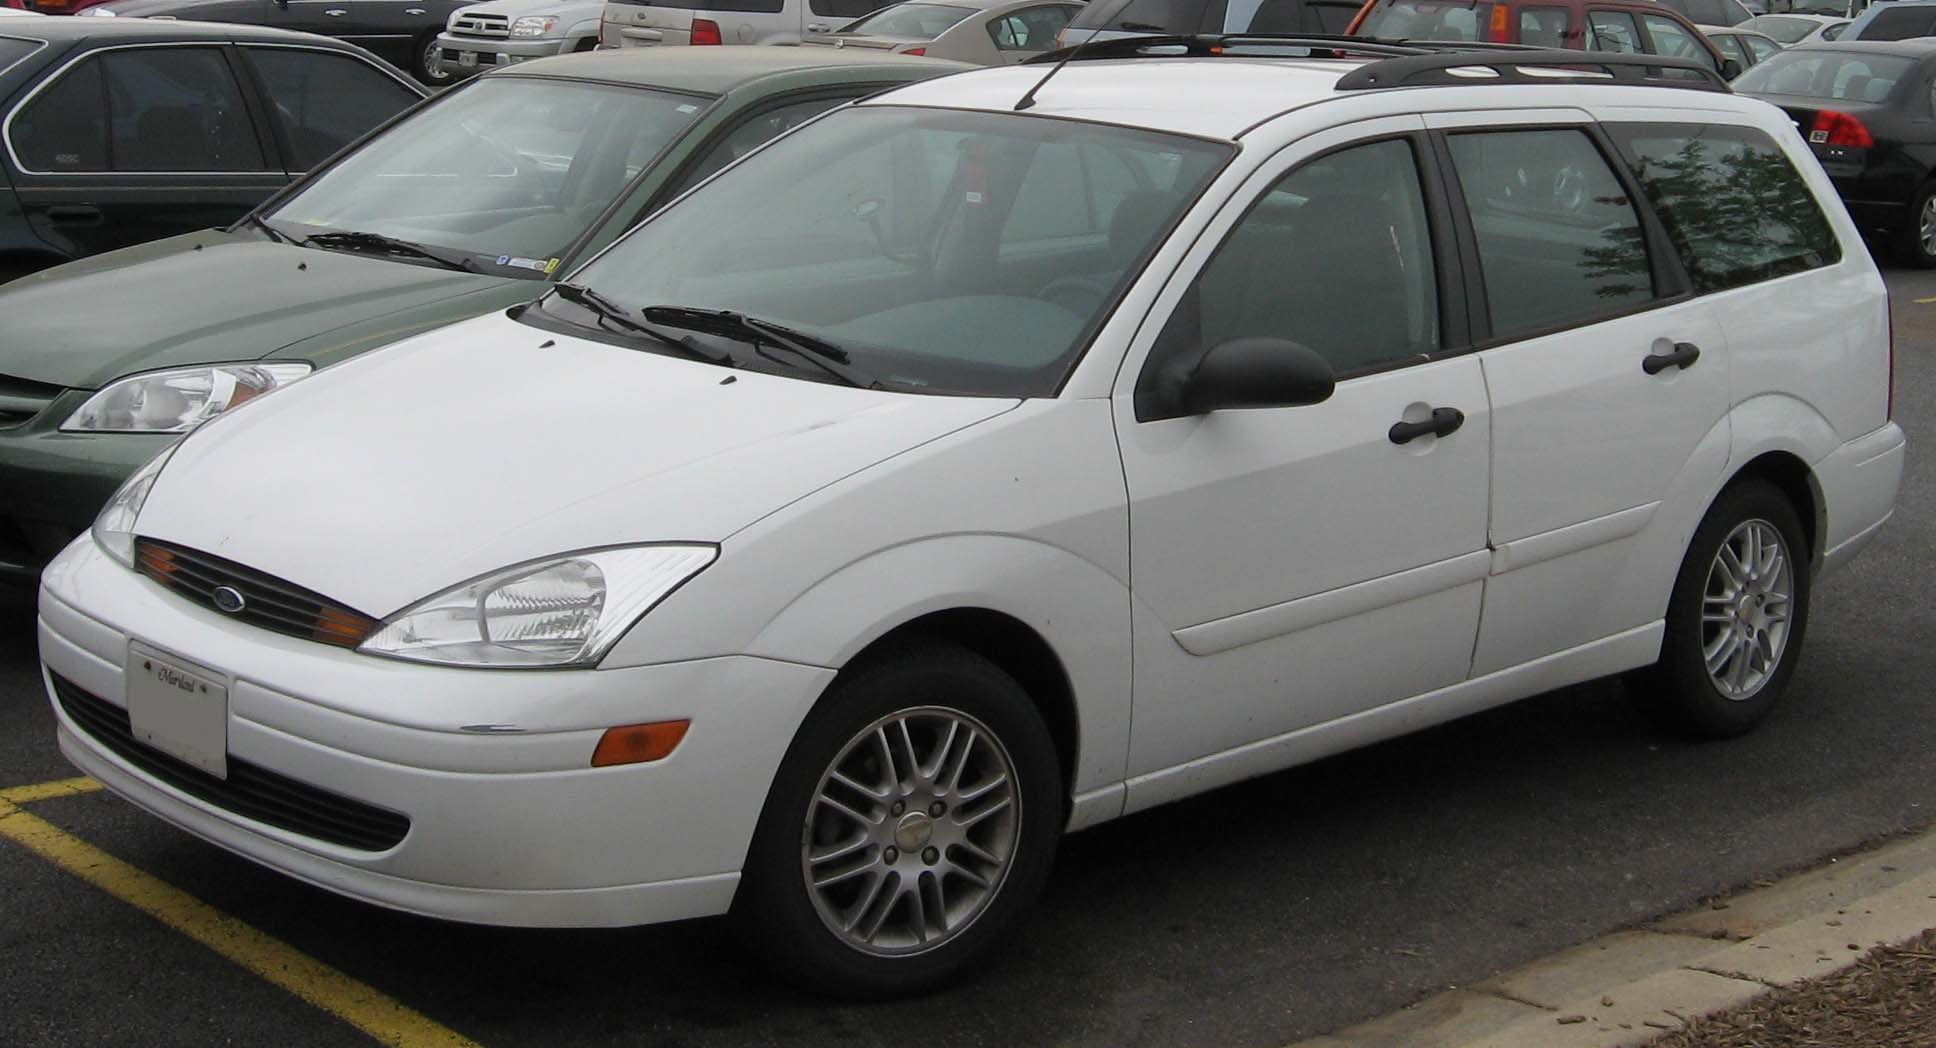 ford focus se wagon-pic. 1